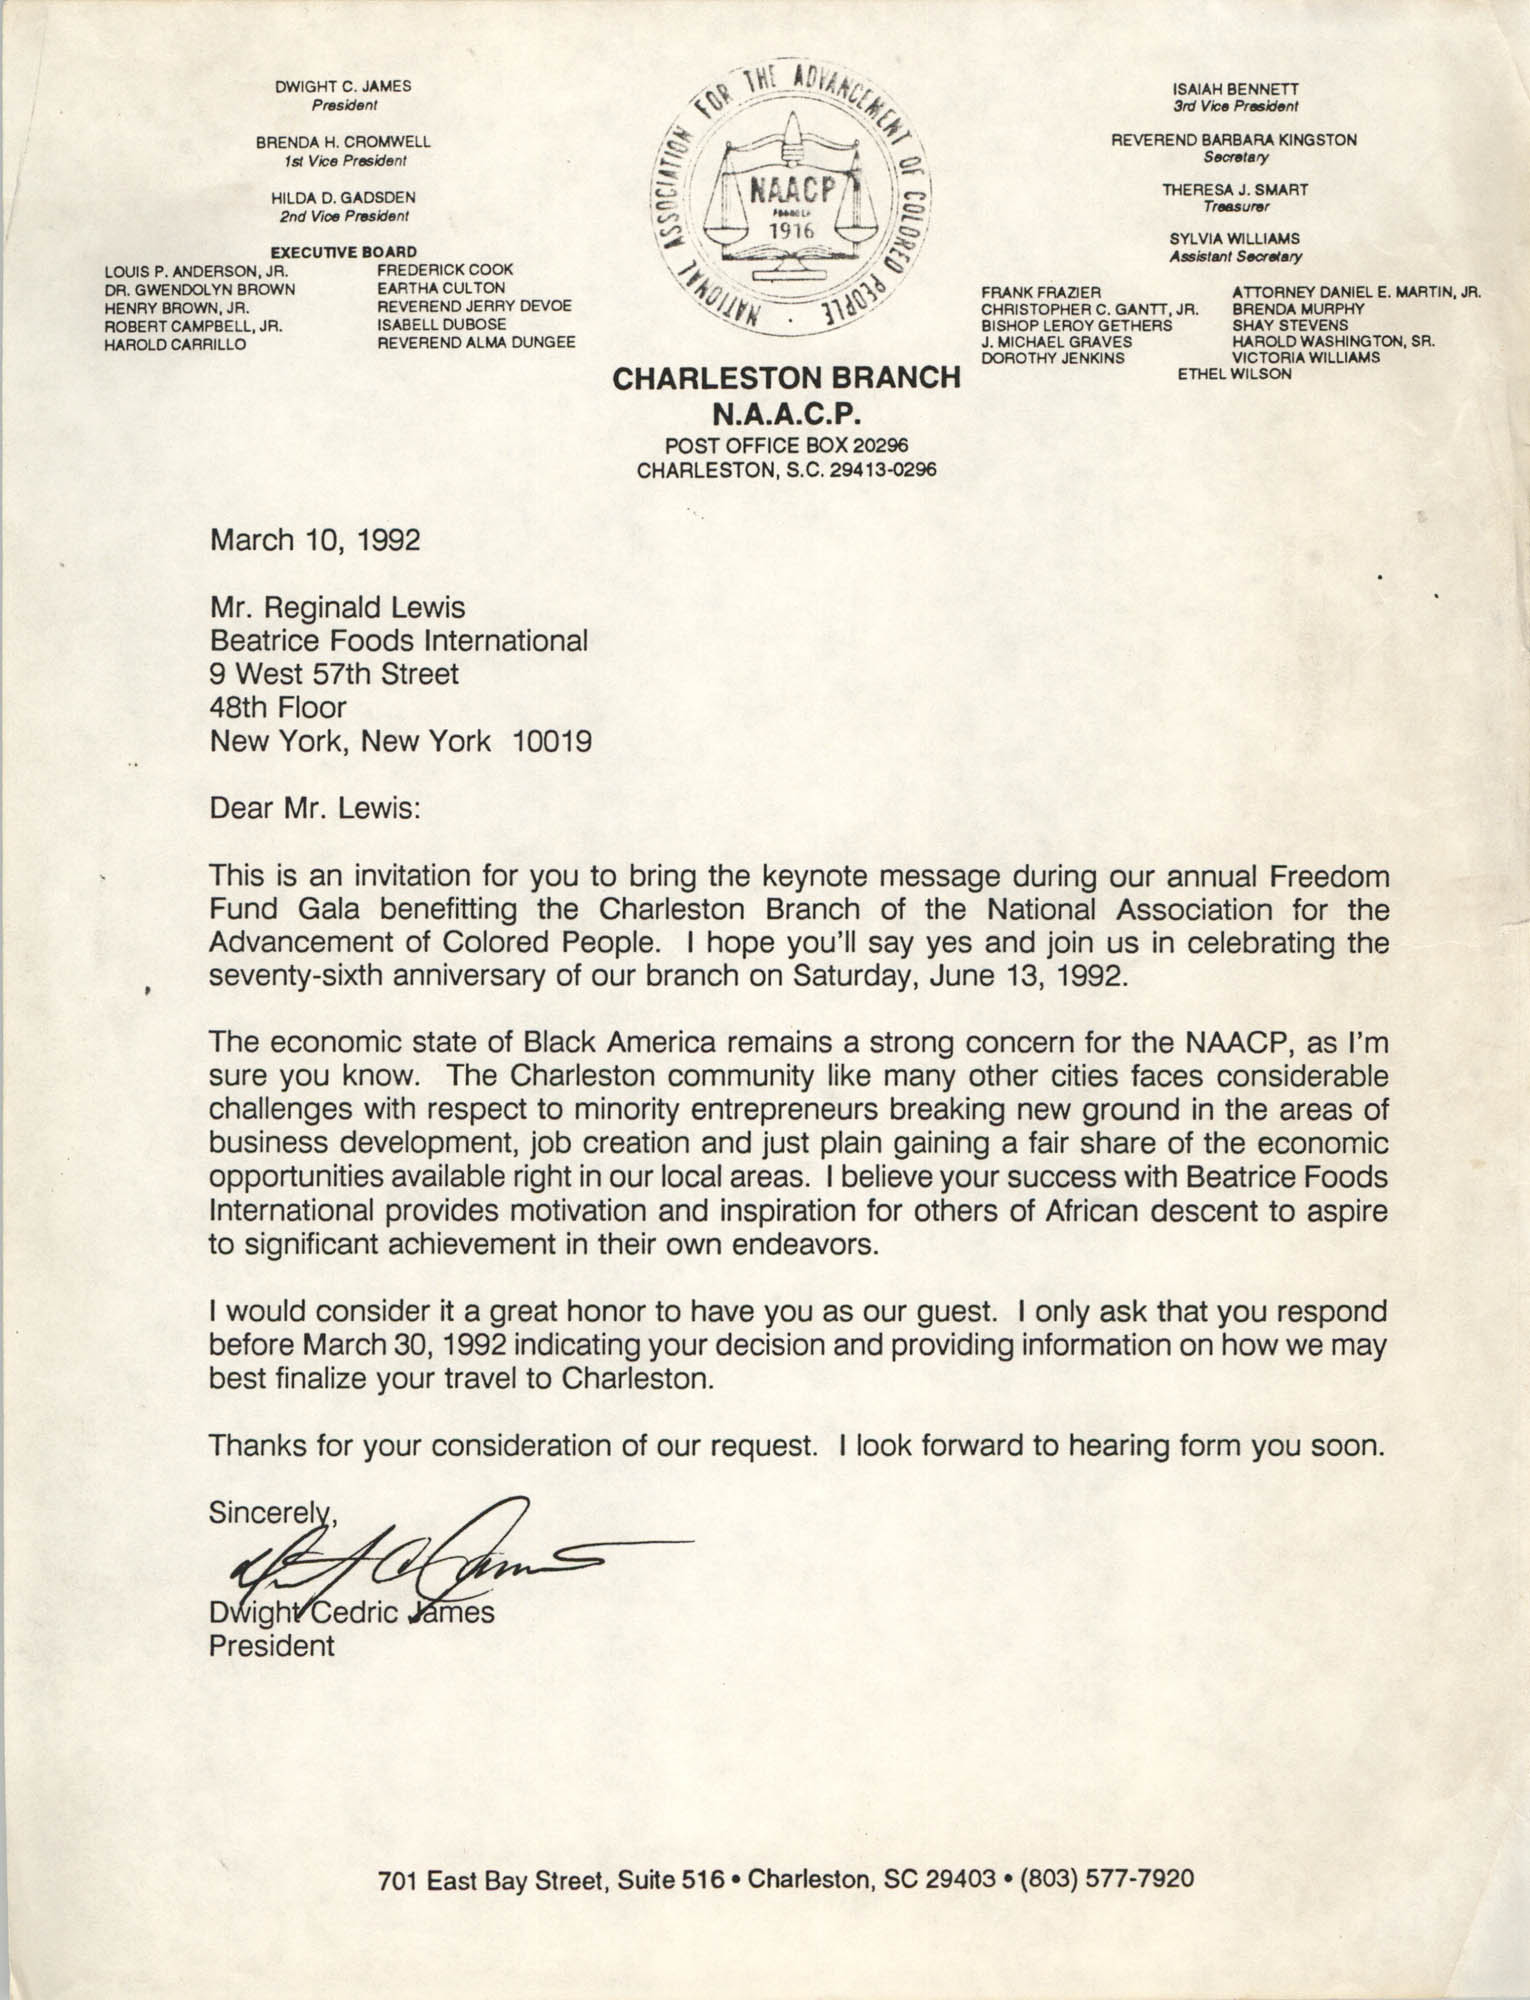 Letter from Dwight C. James to Reginald Lewis, March 10, 1992